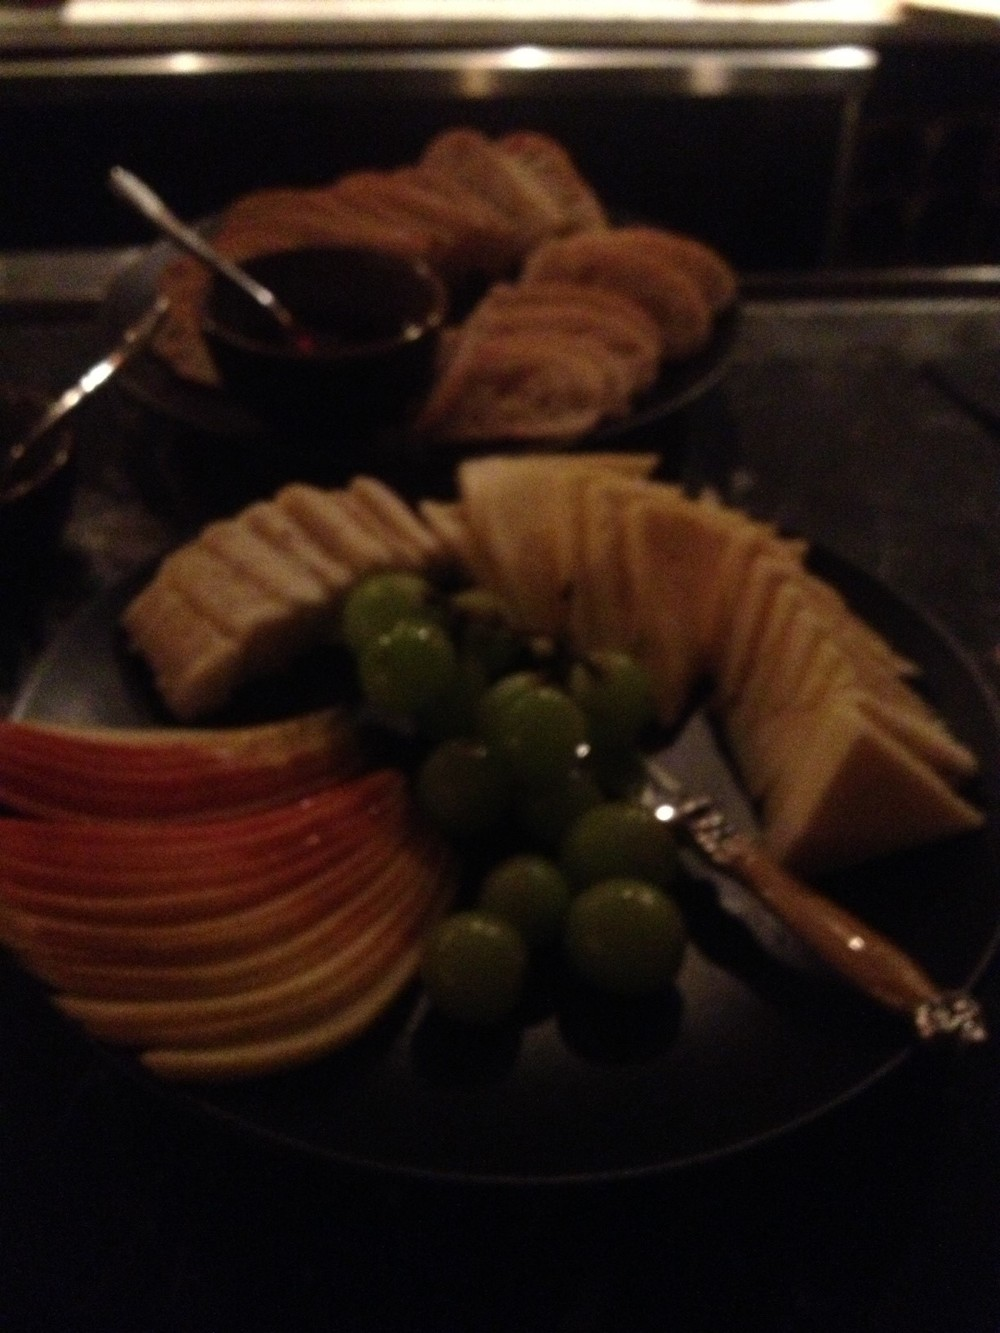 Cheese Plate was not Blurry in Real Life